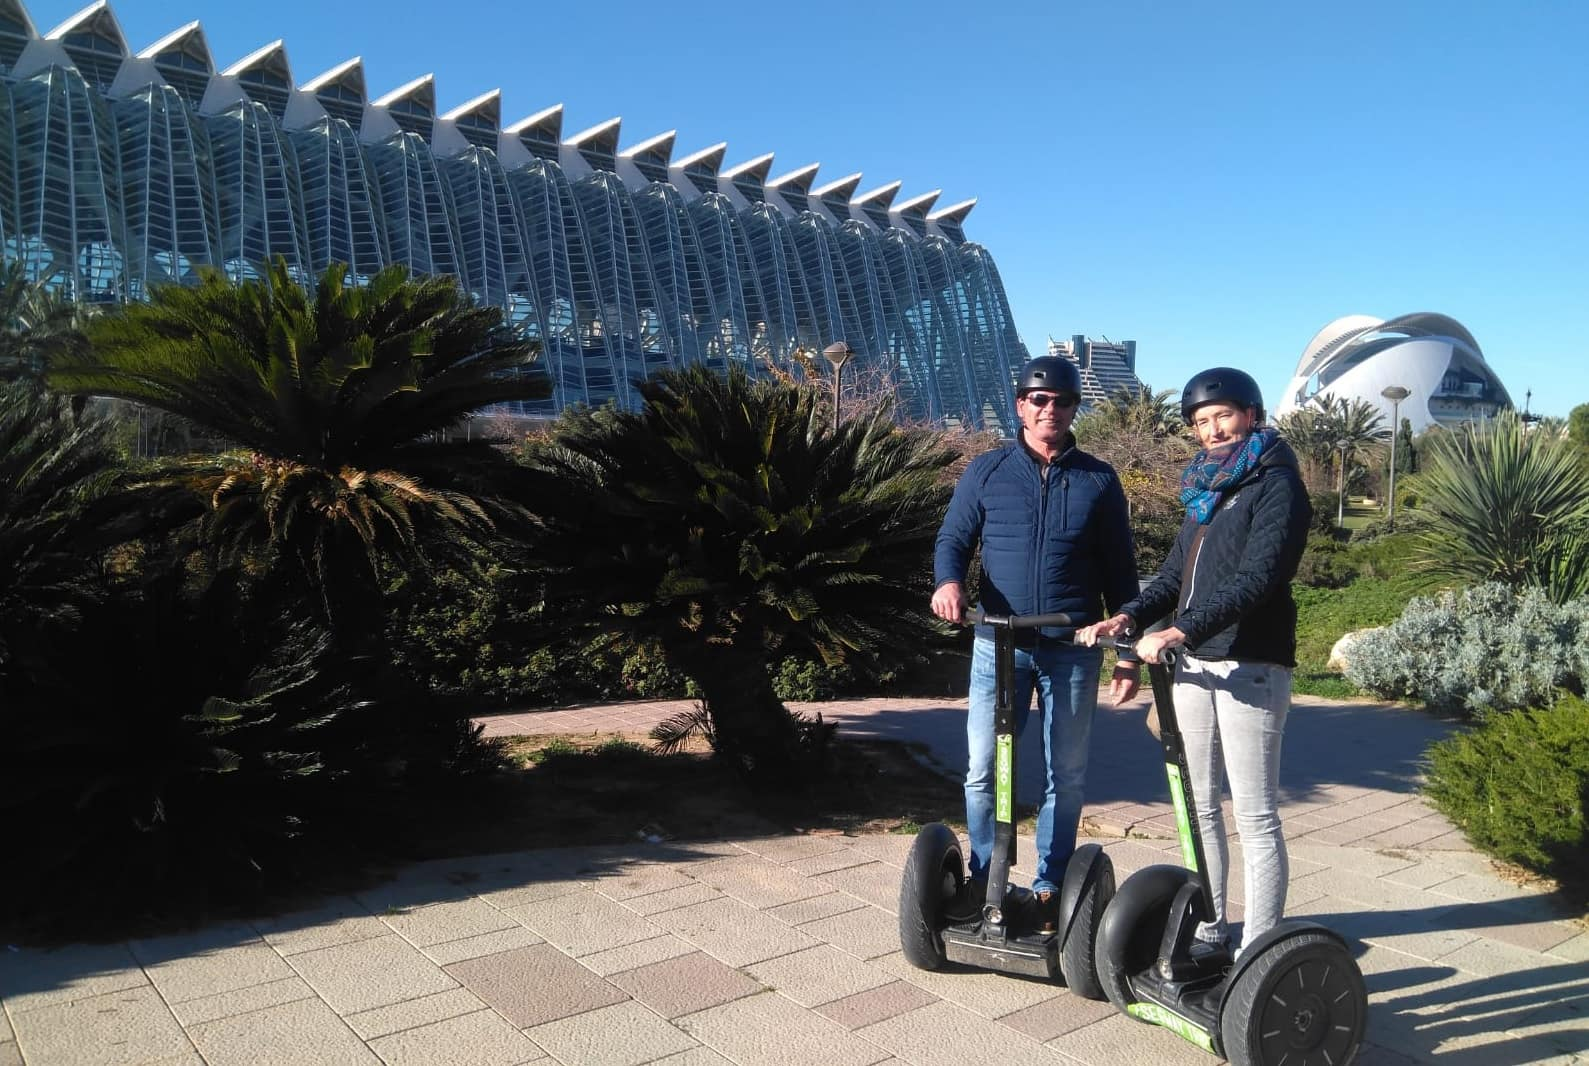 Segway and bike tour, the best visits of Valencia, the best tours of the historical center and the City of Arts and Sciences.